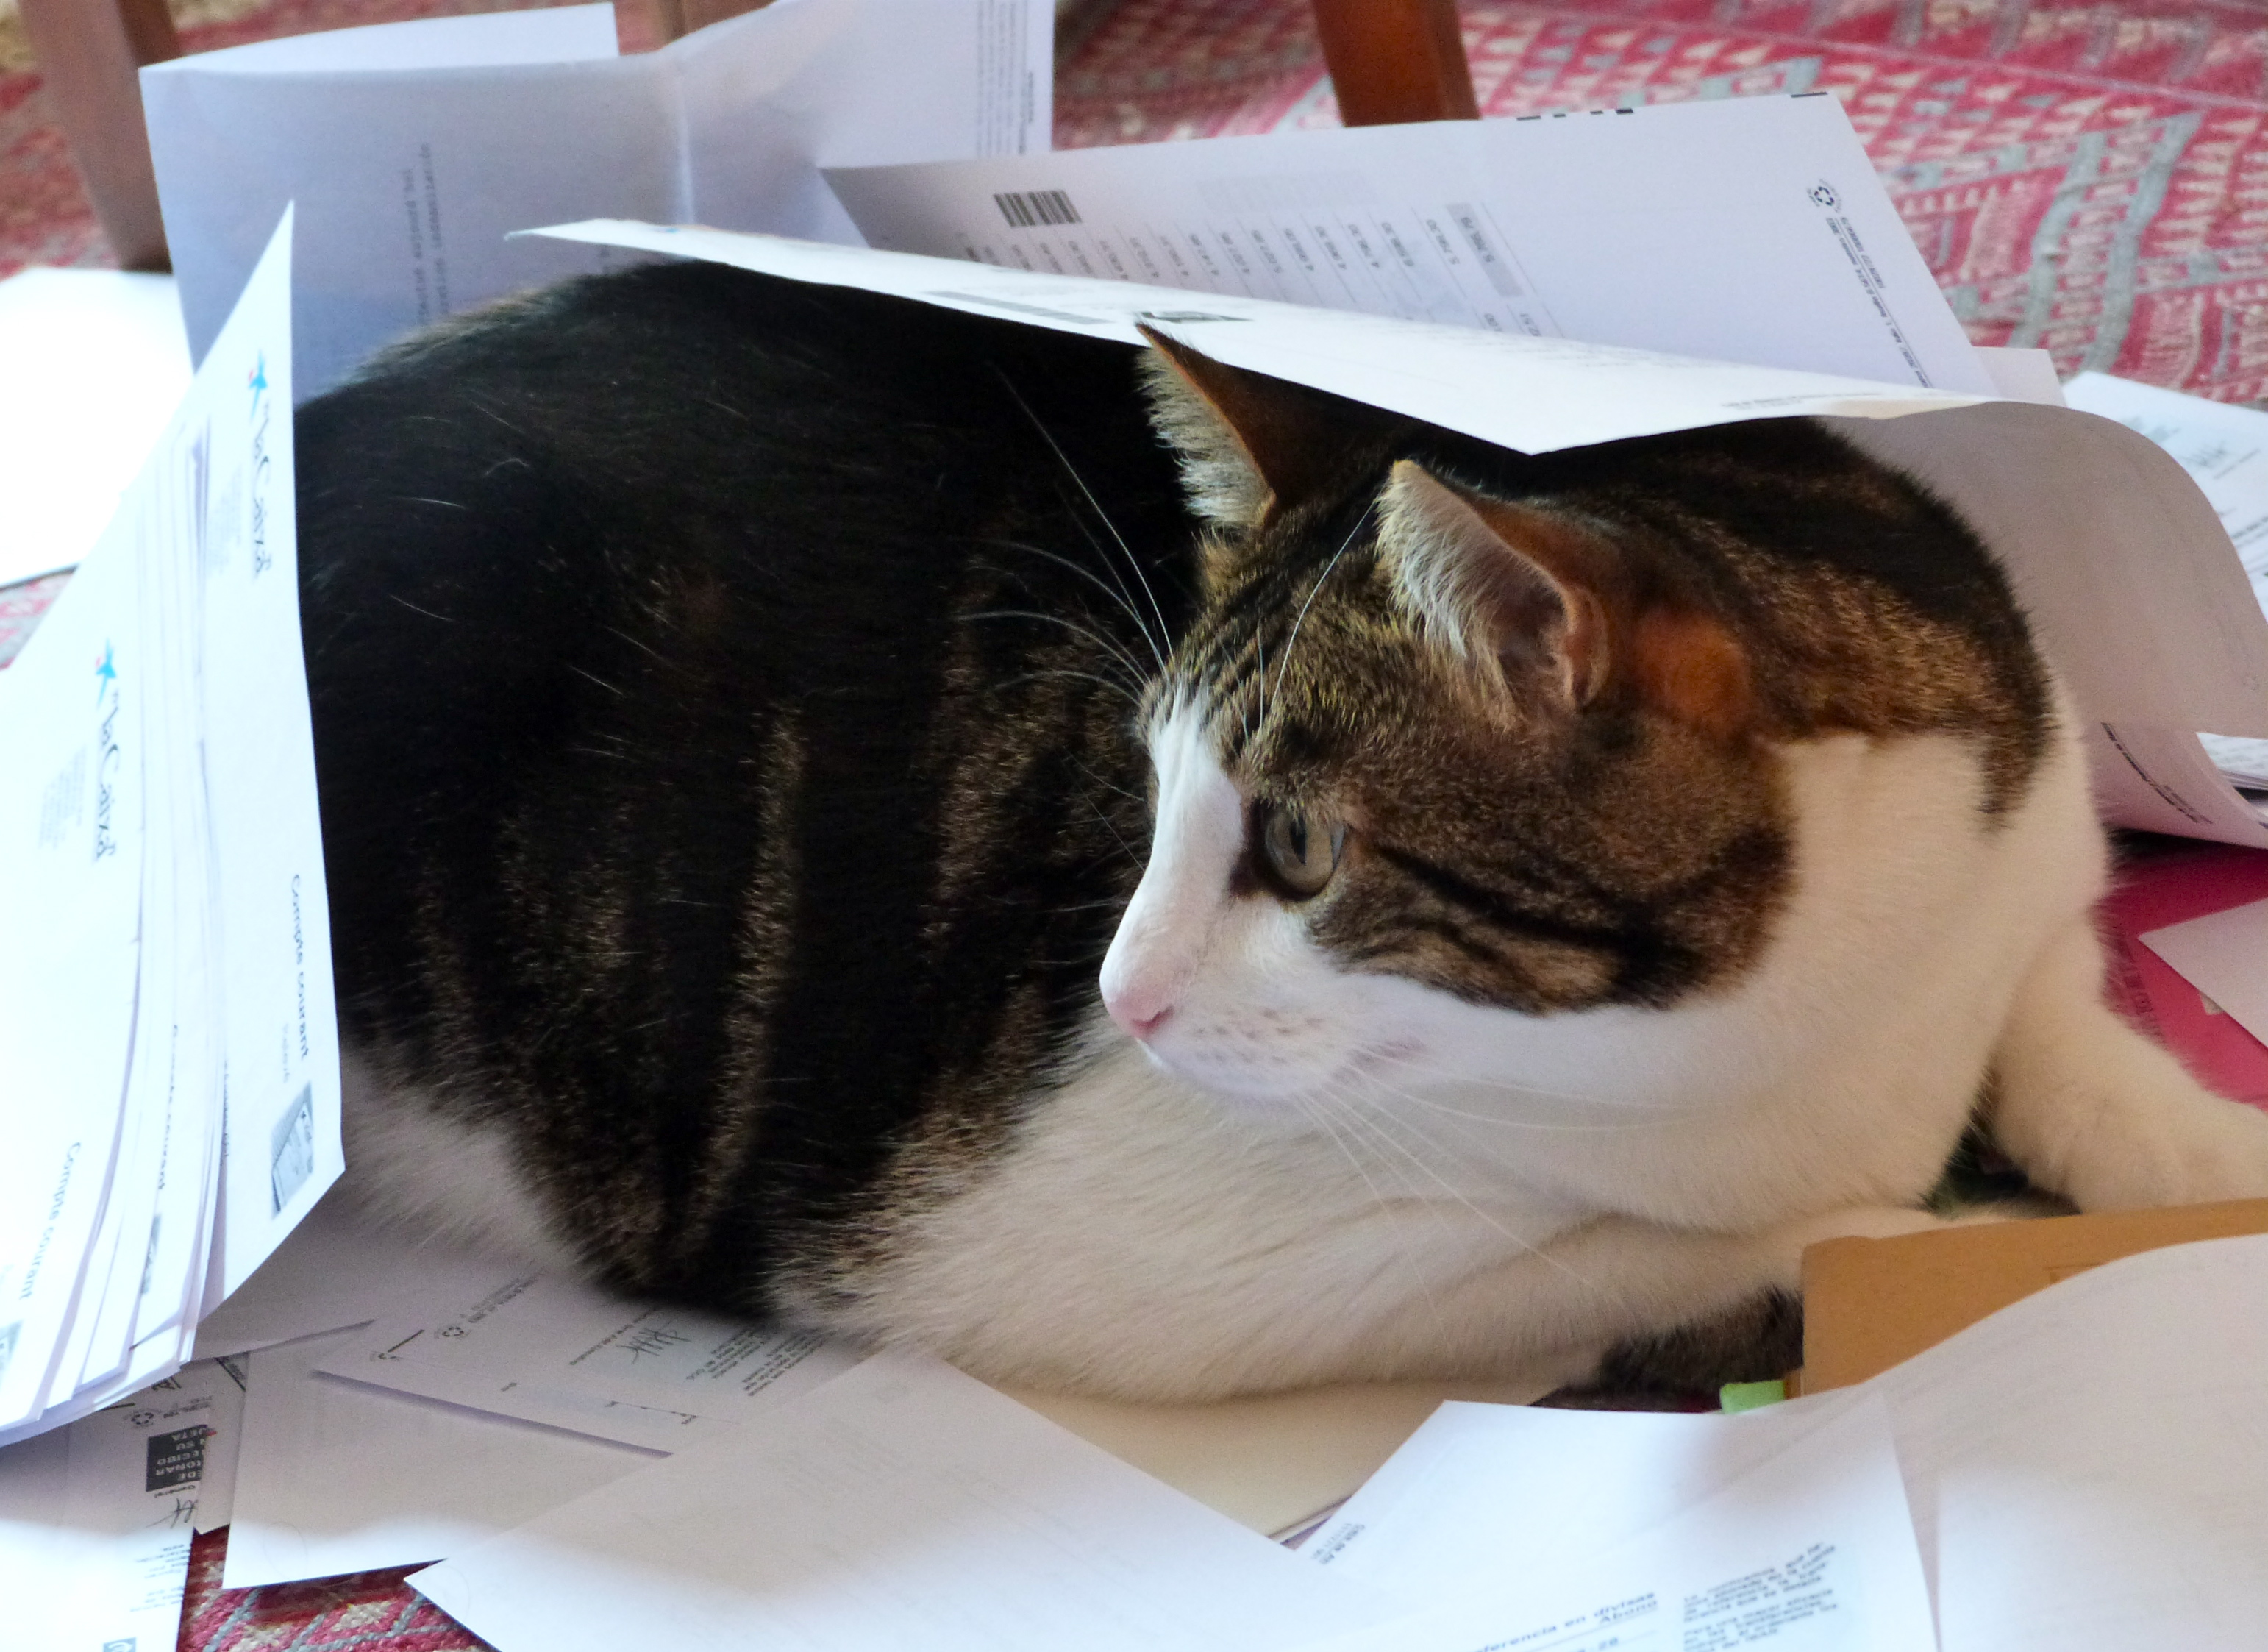 Chiqui helps us with paper work, Animal, Black, Brown, Cat, HQ Photo